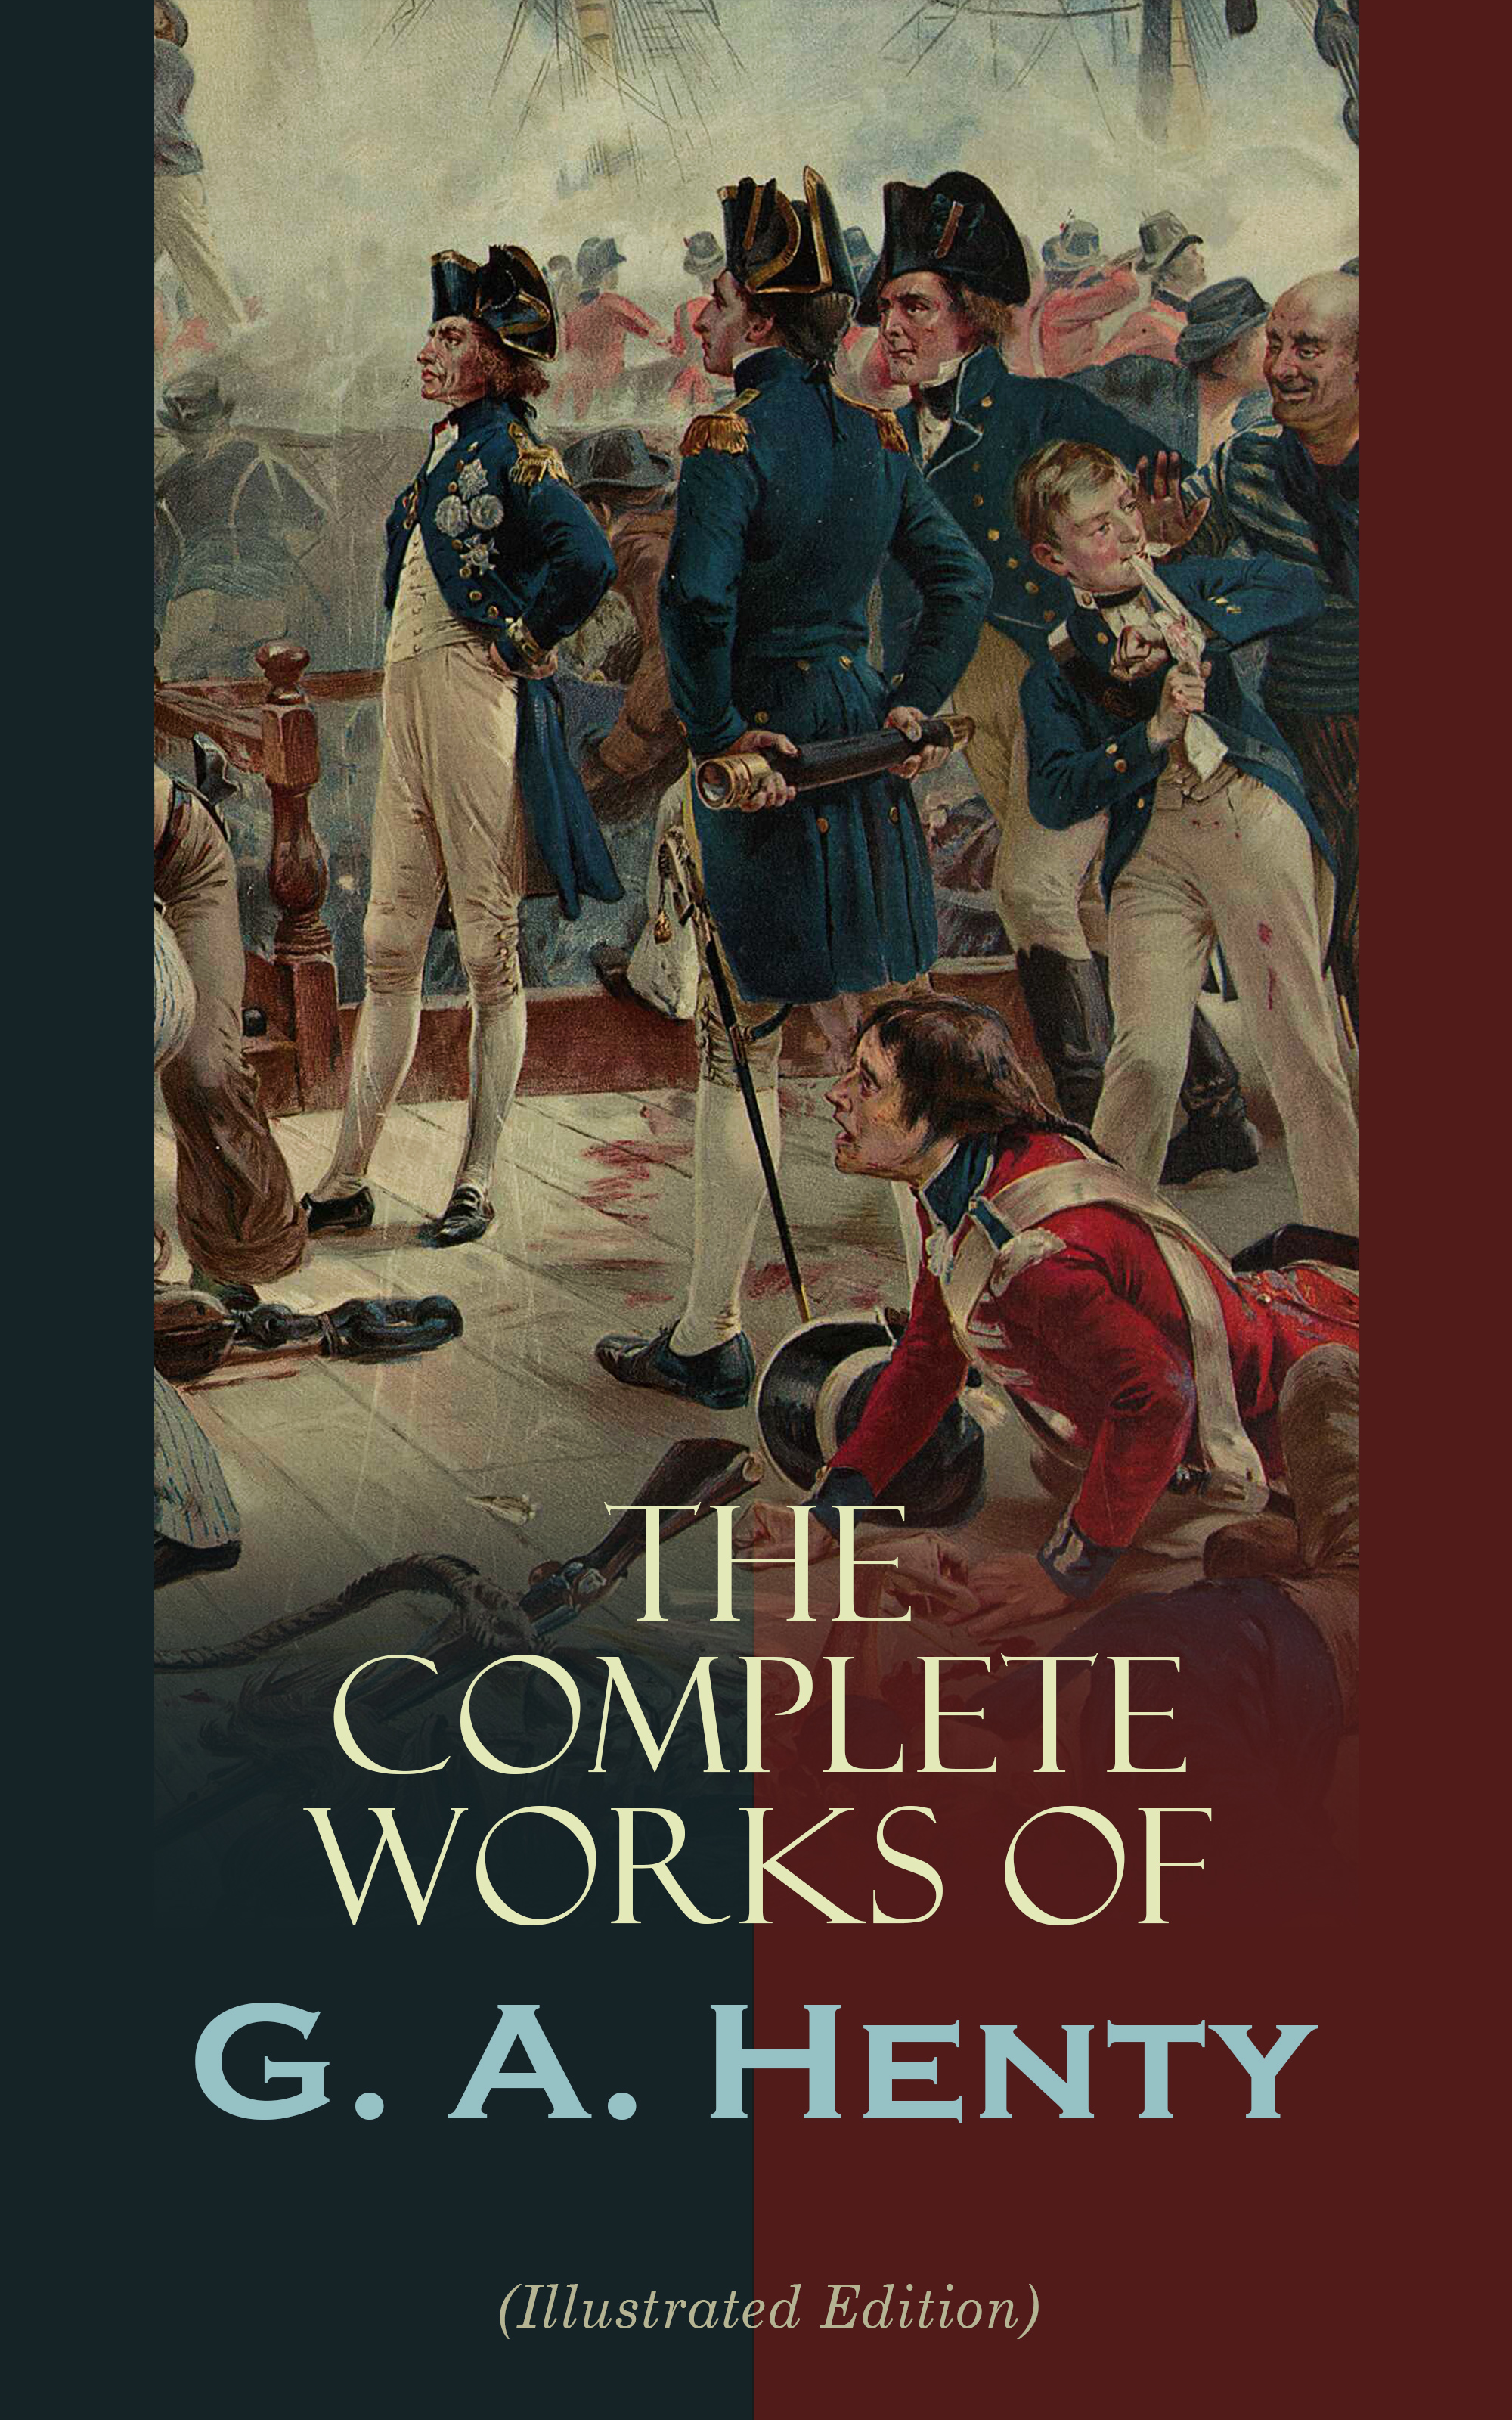 G. A. Henty The Complete Works of G. A. Henty (Illustrated Edition) berentes apple r logo – a complete illustrated handbook paper only